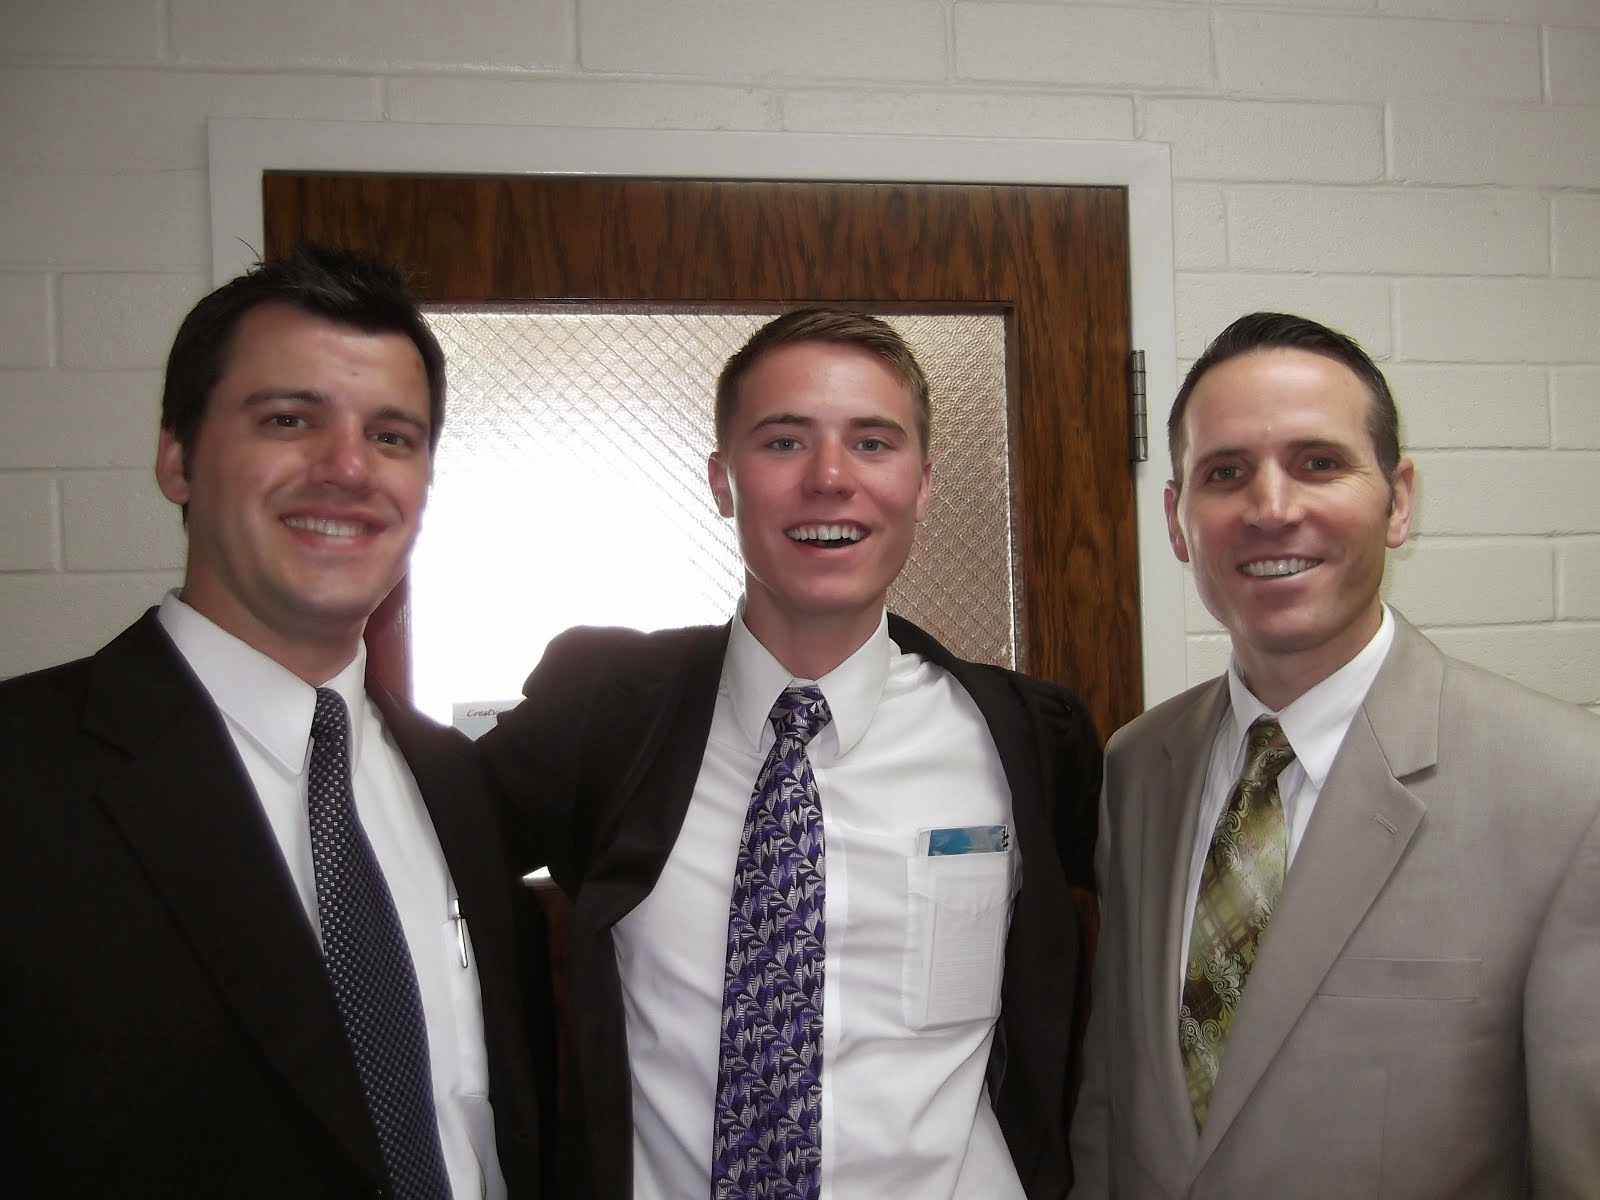 Brother Ratcliff & Brother Burbidge with Elder Foster